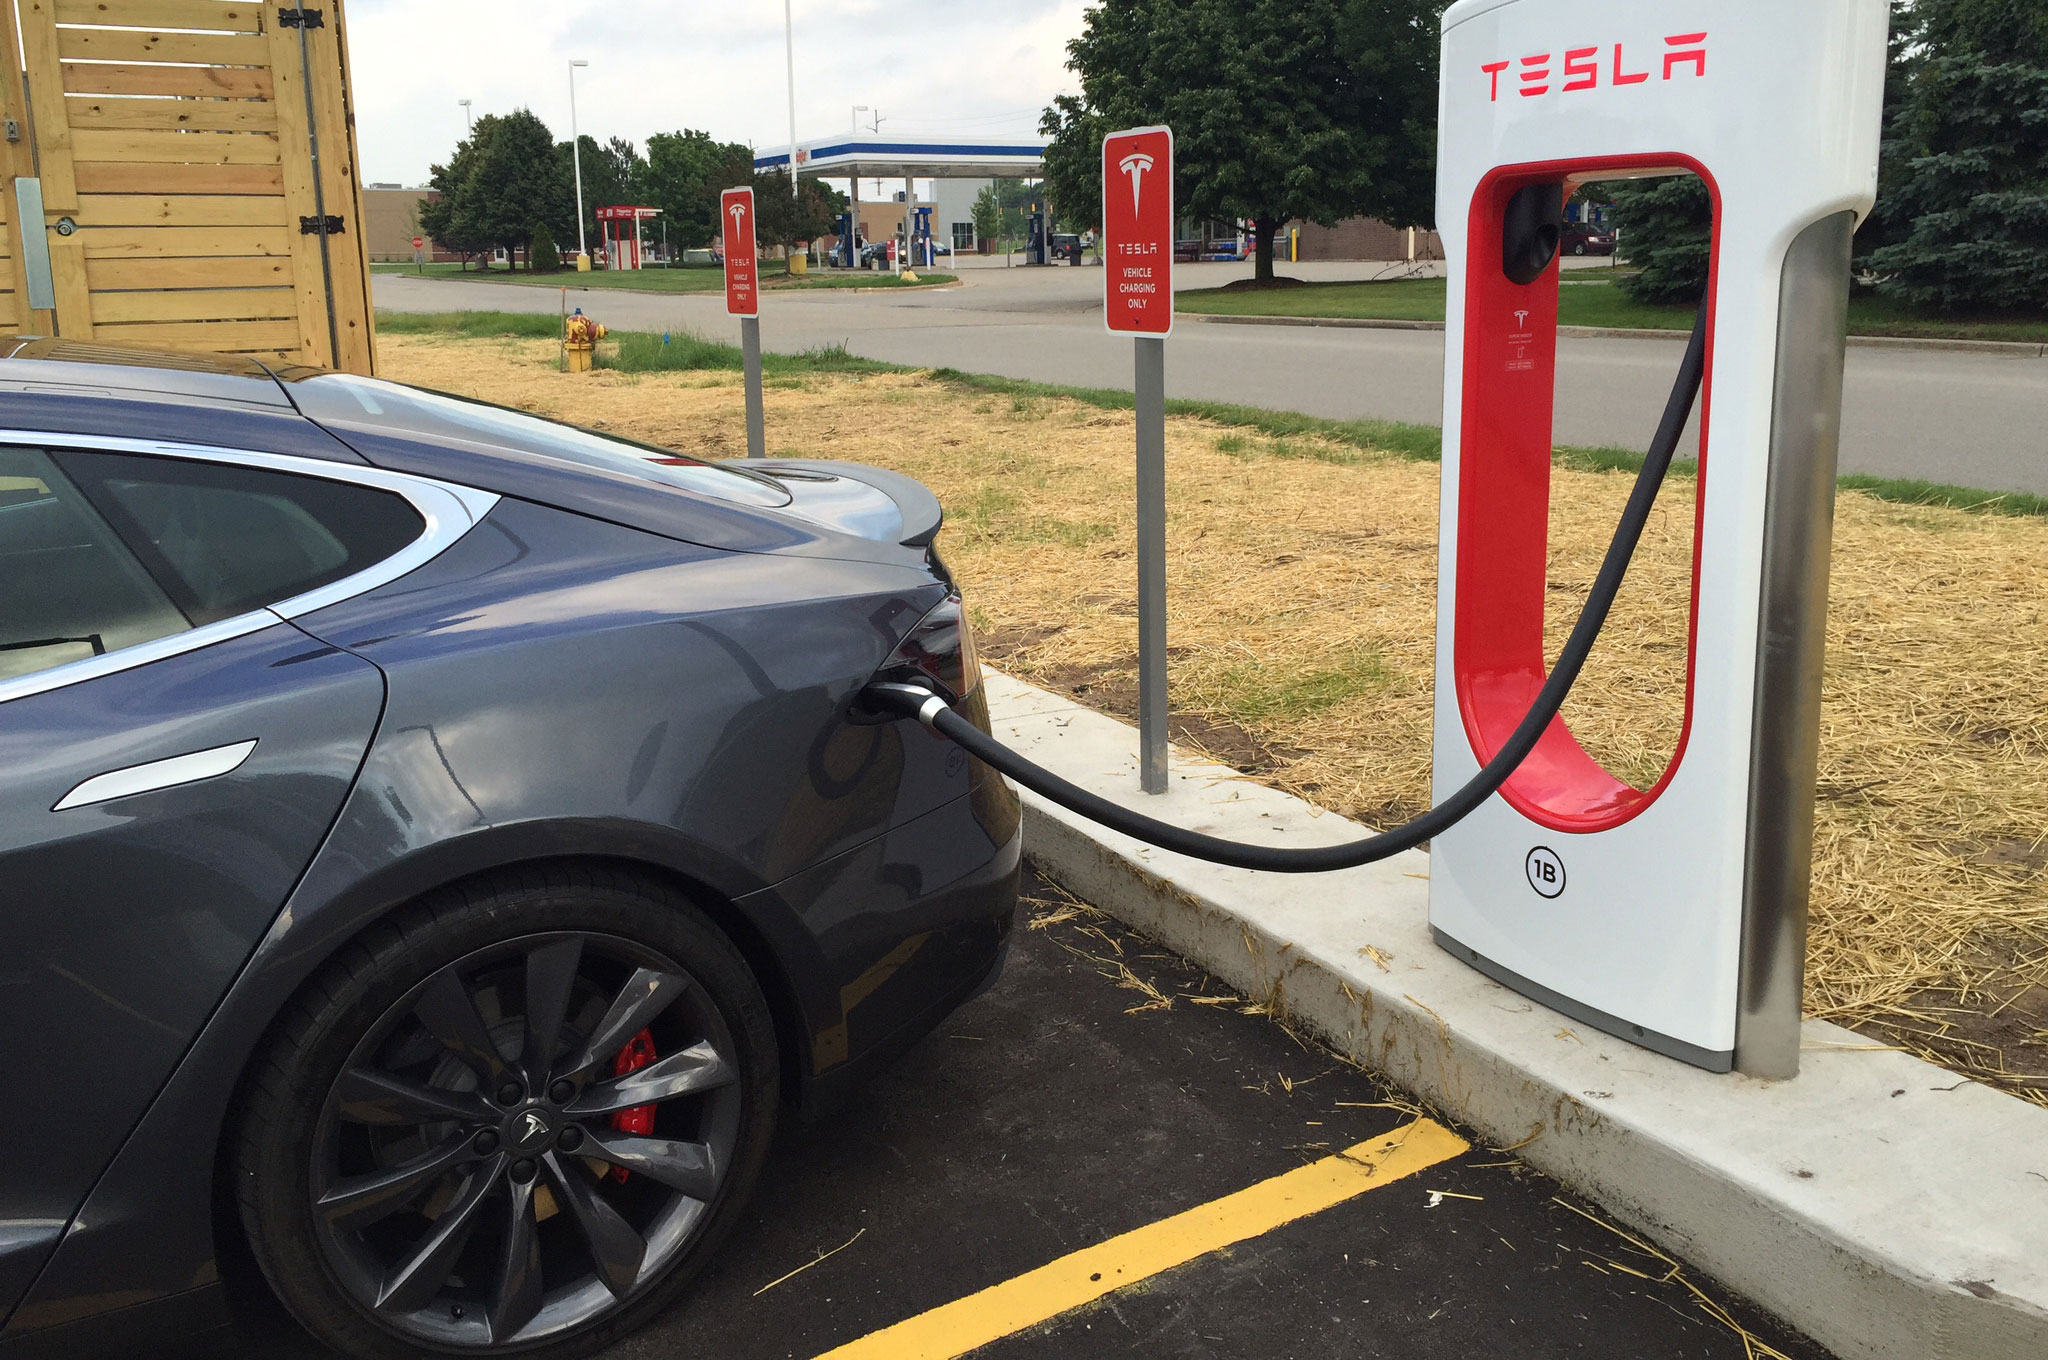 Supercharging A Tesla Model S At A Grocery Store